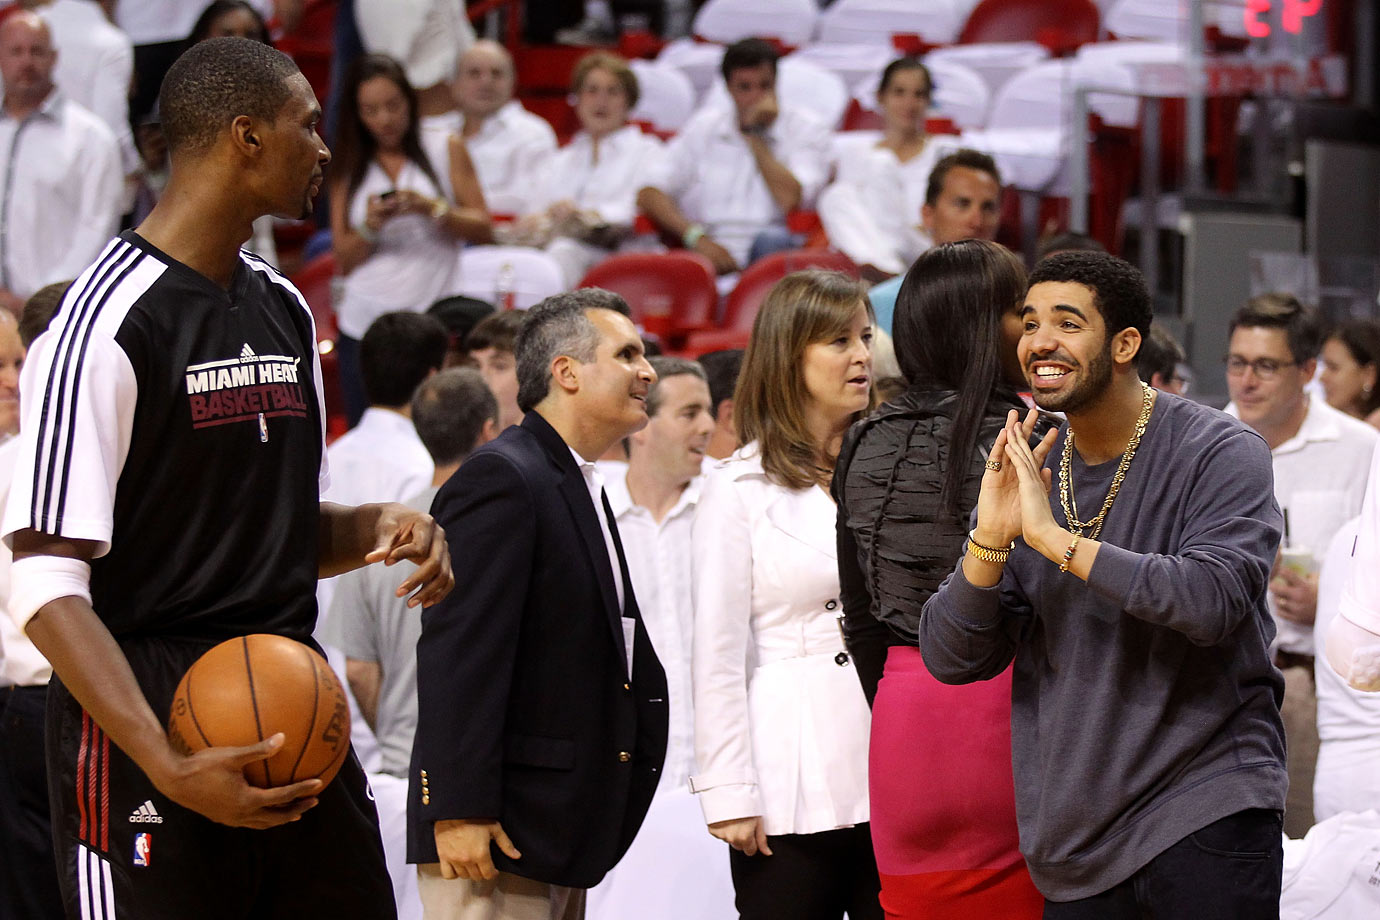 Miami Heat vs. Chicago Bulls in Game 3 of the Eastern Conference Finals at American Airlines Arena in Miami